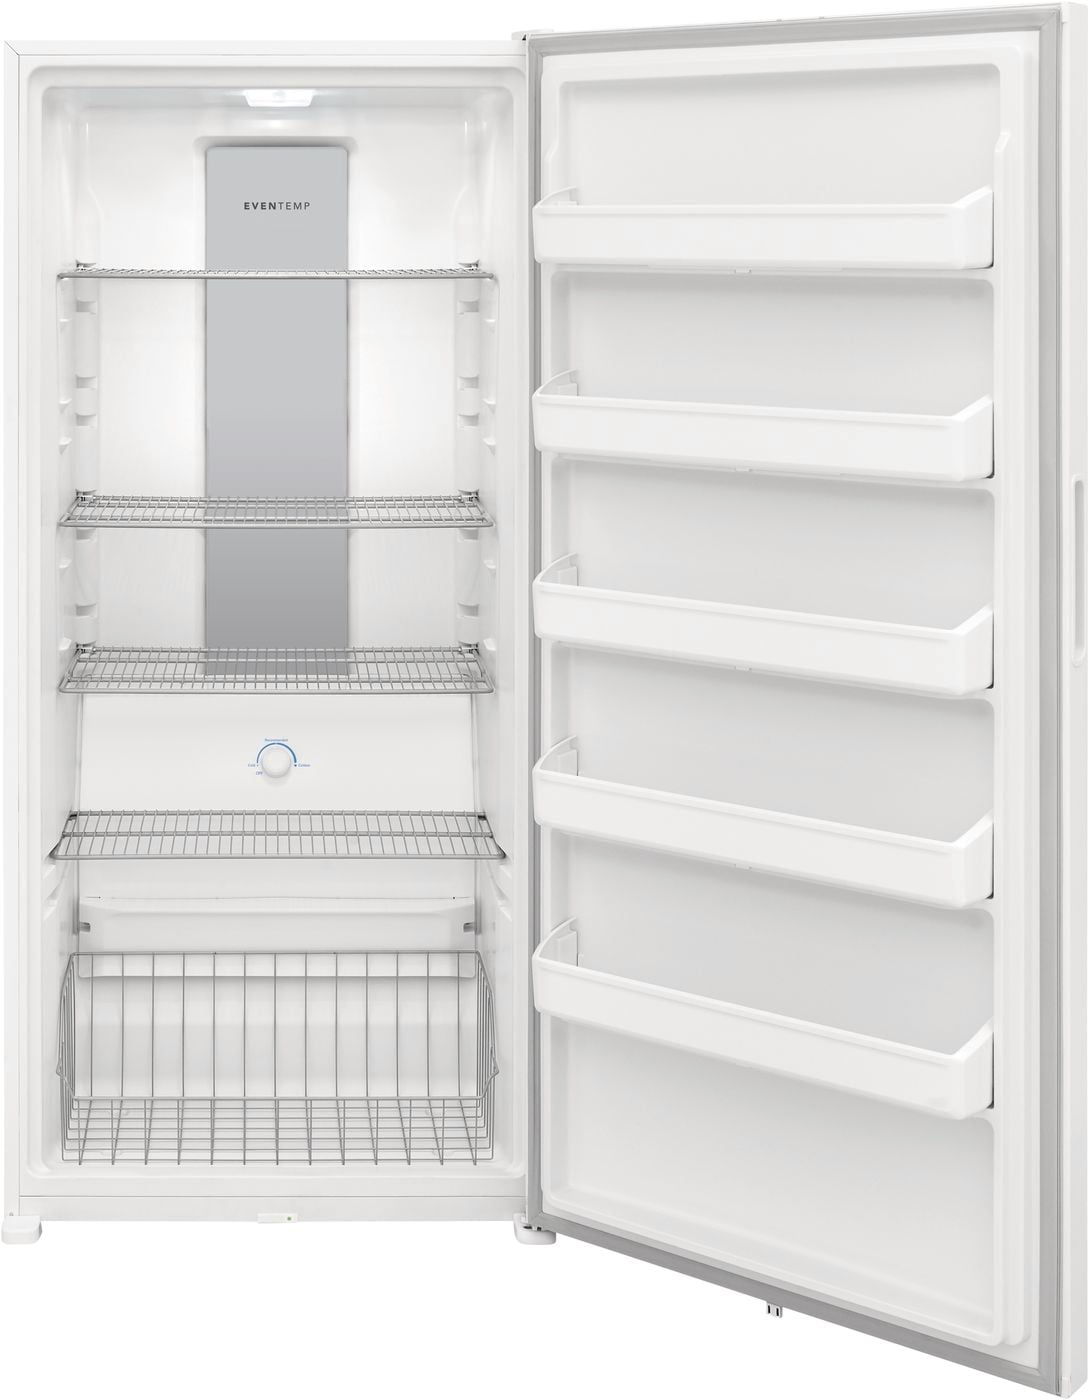 ft Capacity Automatic Defrost LED Lighting and Adjustable Shelves in White Frigidaire FFFU20F4VW 33 Upright Freezer with 20 cu